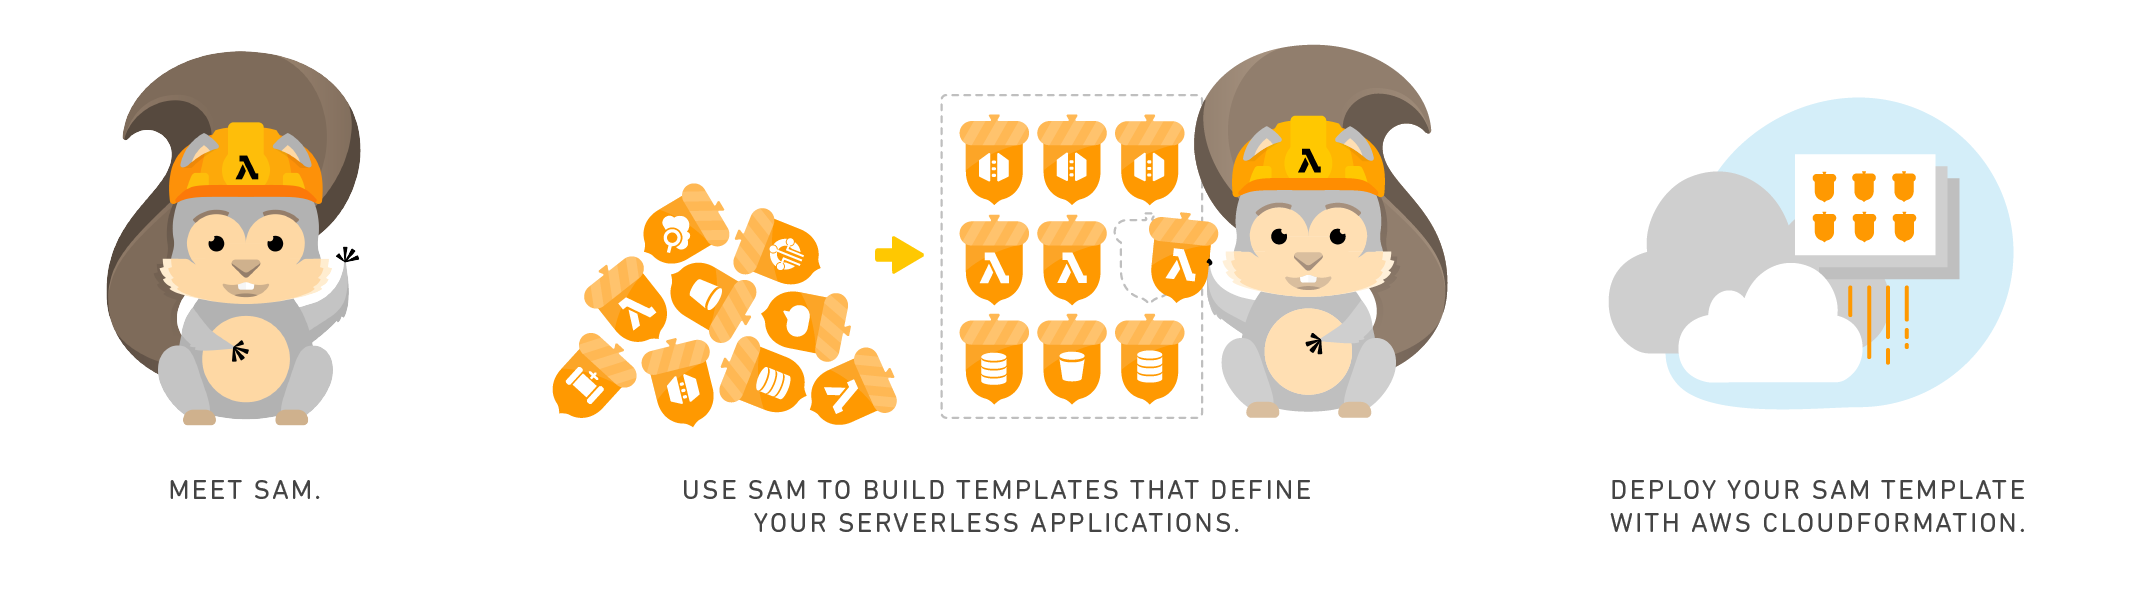 Go Serverless with SAM for local dev & test - IOpipe Blog